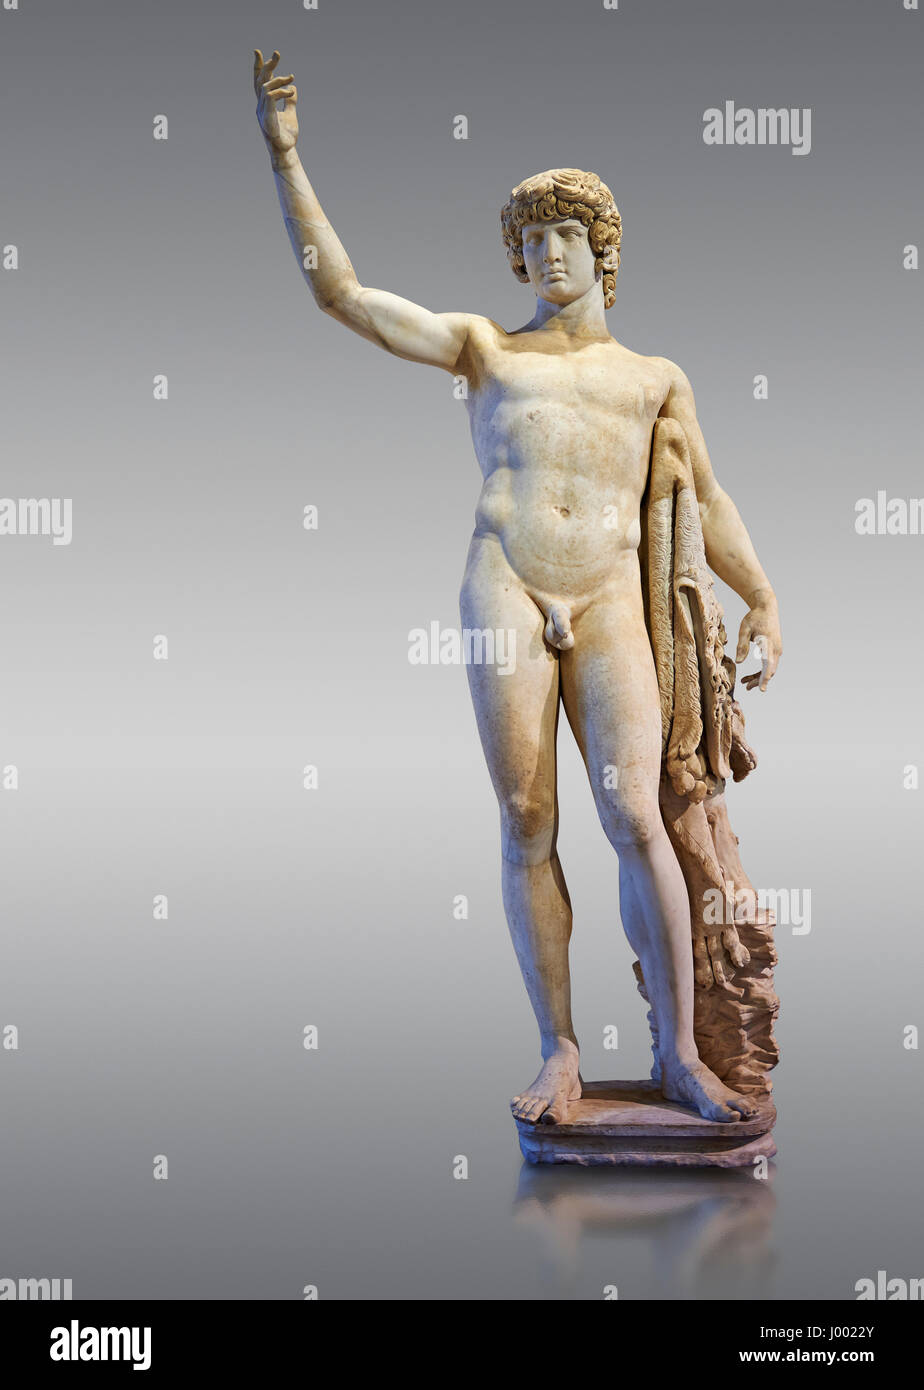 2nd cent AD Roman statue of Antinous, Inv No. MR 74 (Usual No Ma 2243), Louvre Museum, Paris. - Stock Image